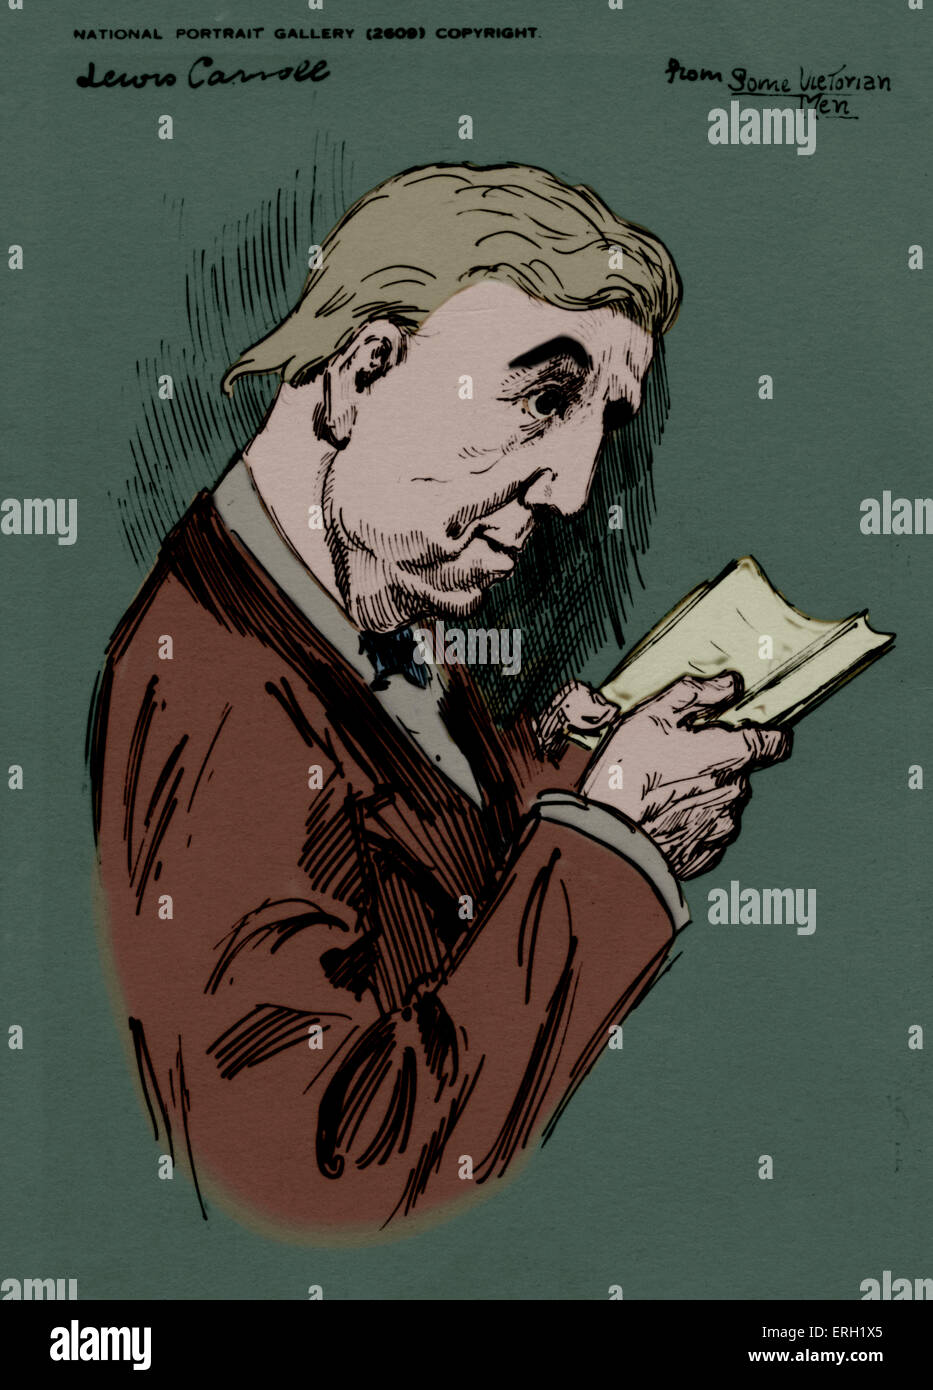 Lewis Carroll - portrait of the British author reading, real name Charles Lutwidge Dodgson. 27 January 1832 - 14 - Stock Image